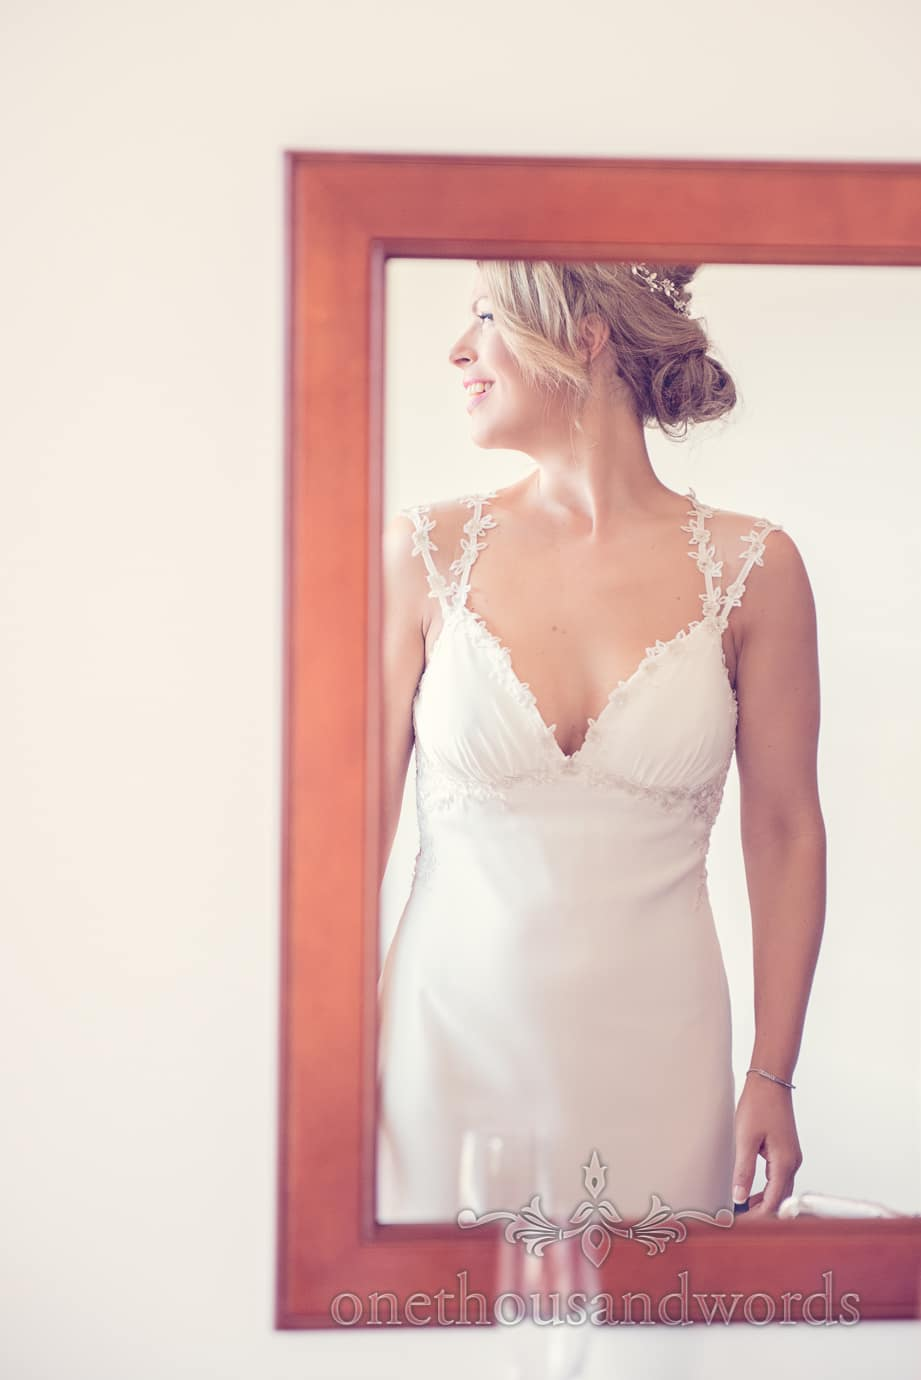 Bride in white wedding dress in mirror from our best wedding photos